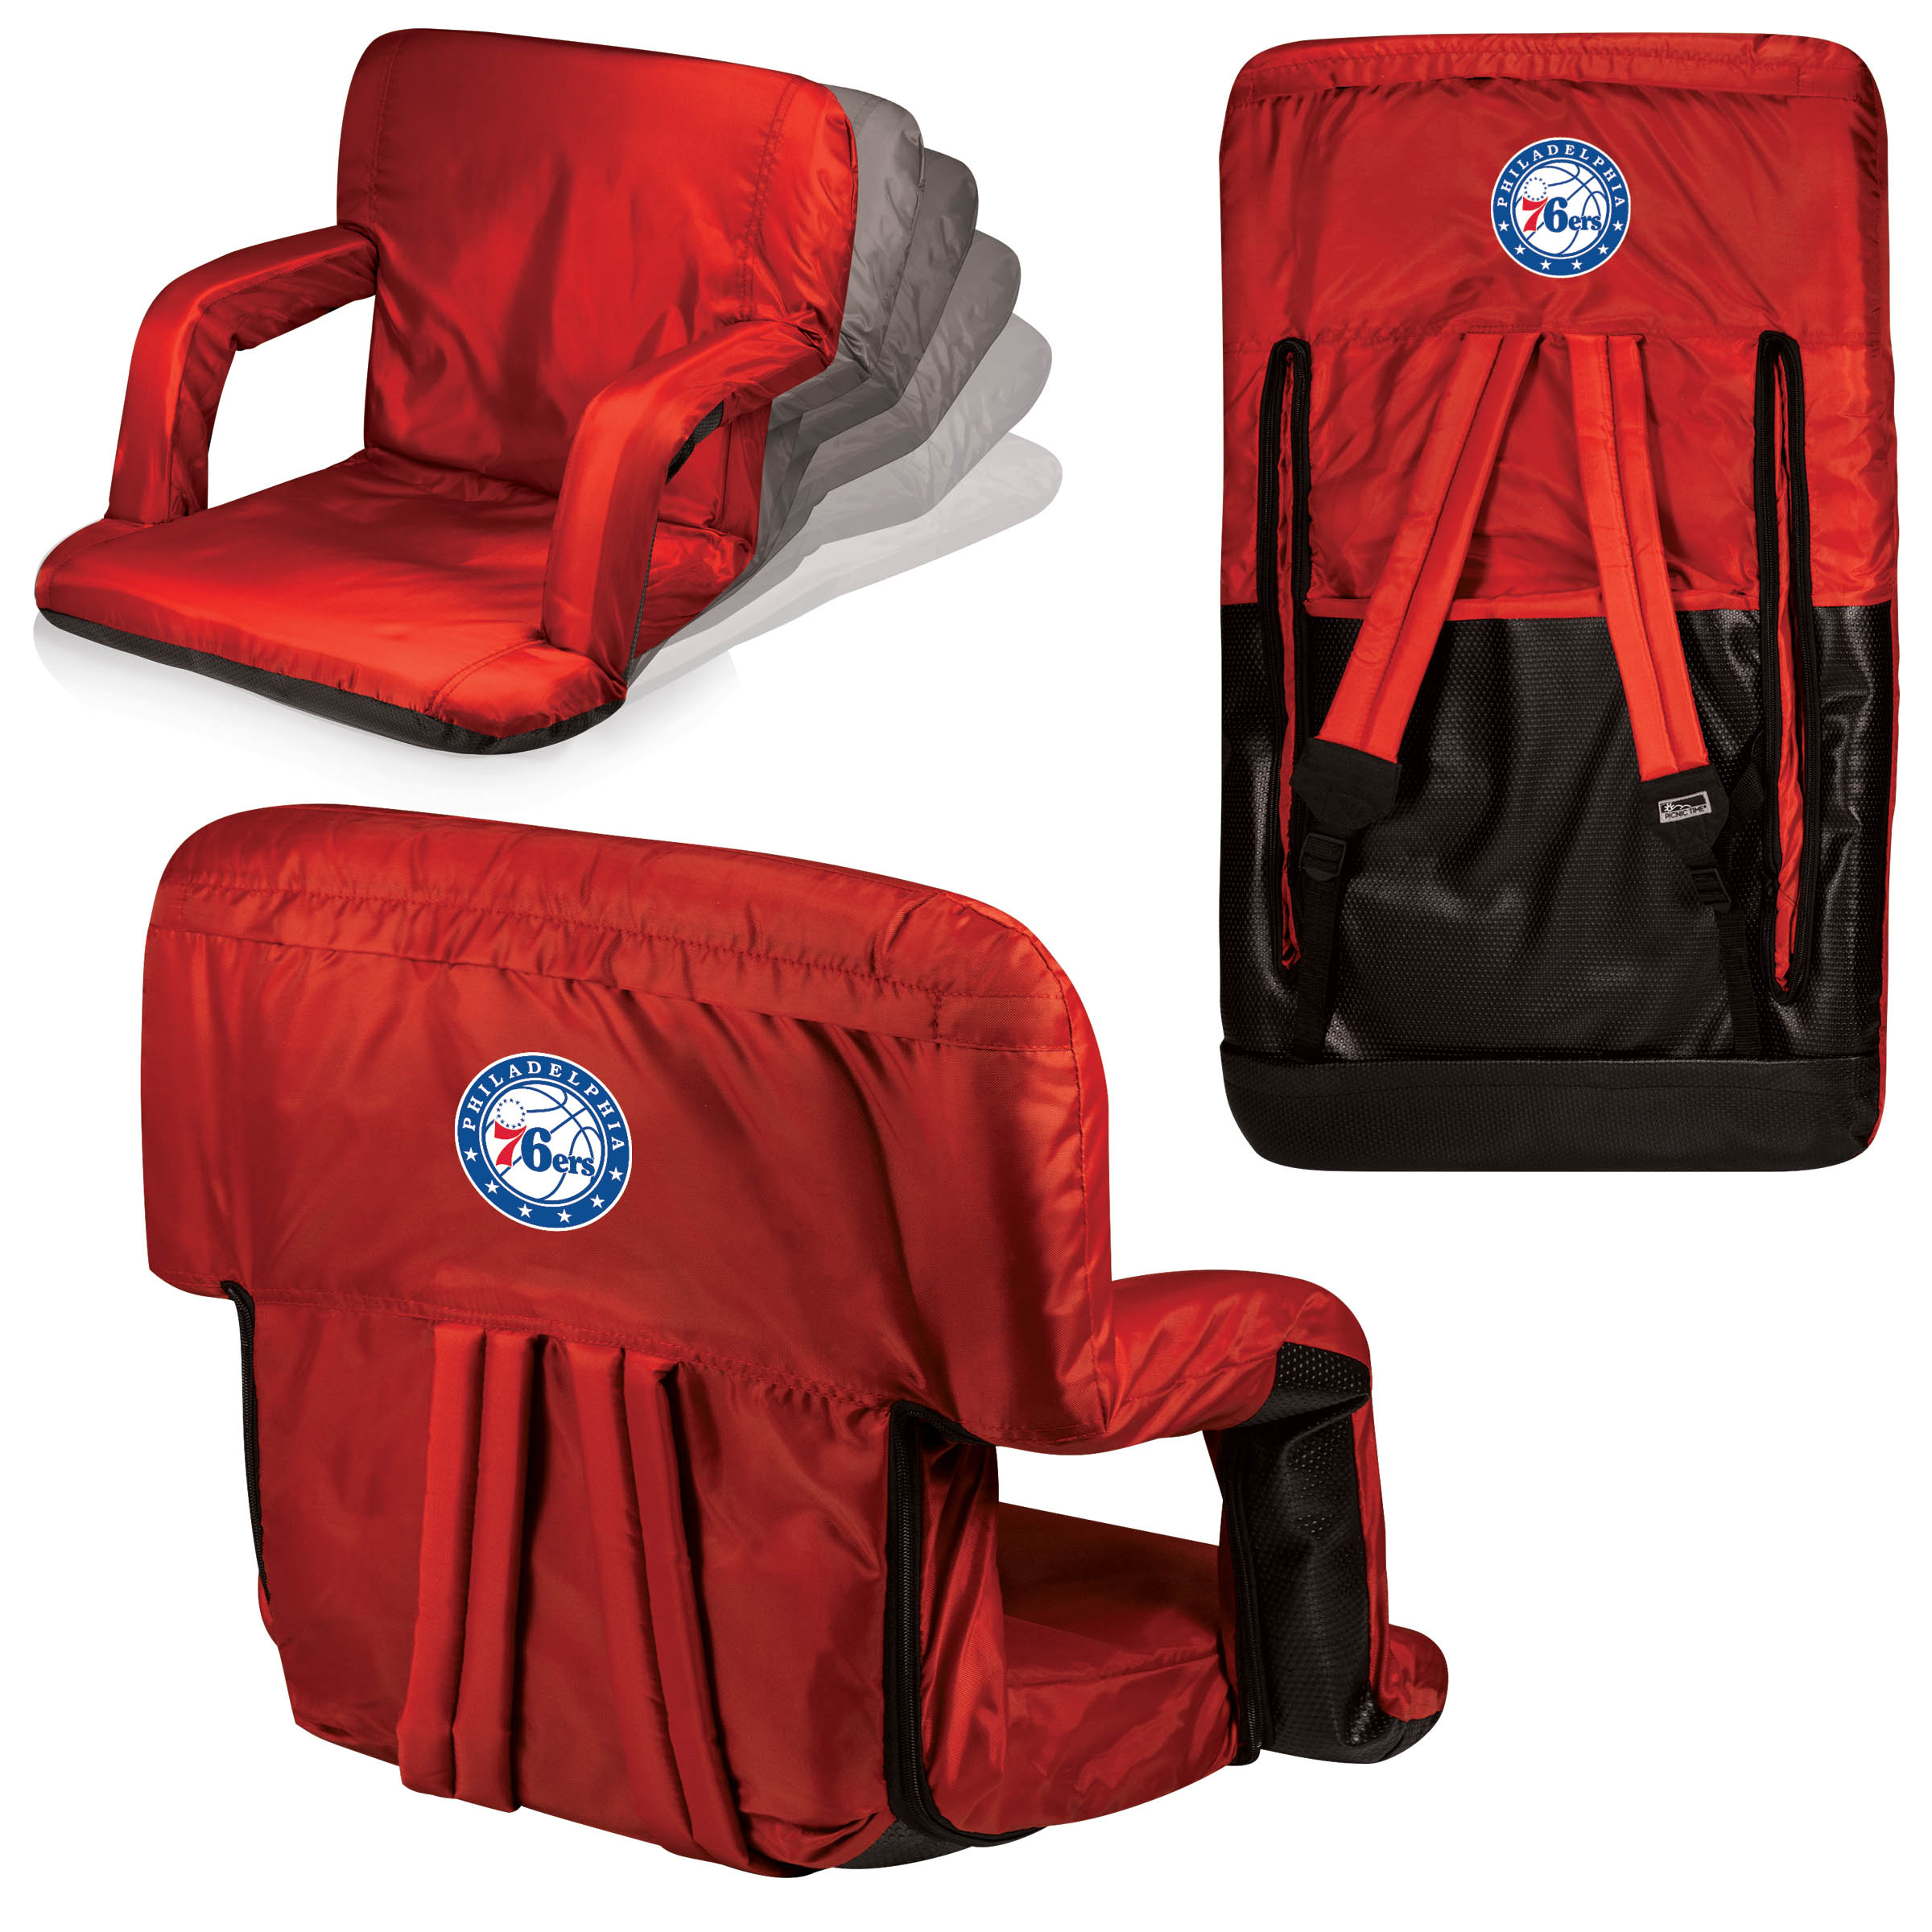 Philadelphia 76ers Red Ventura Seat Portable Recliner Chair By Picnic Time